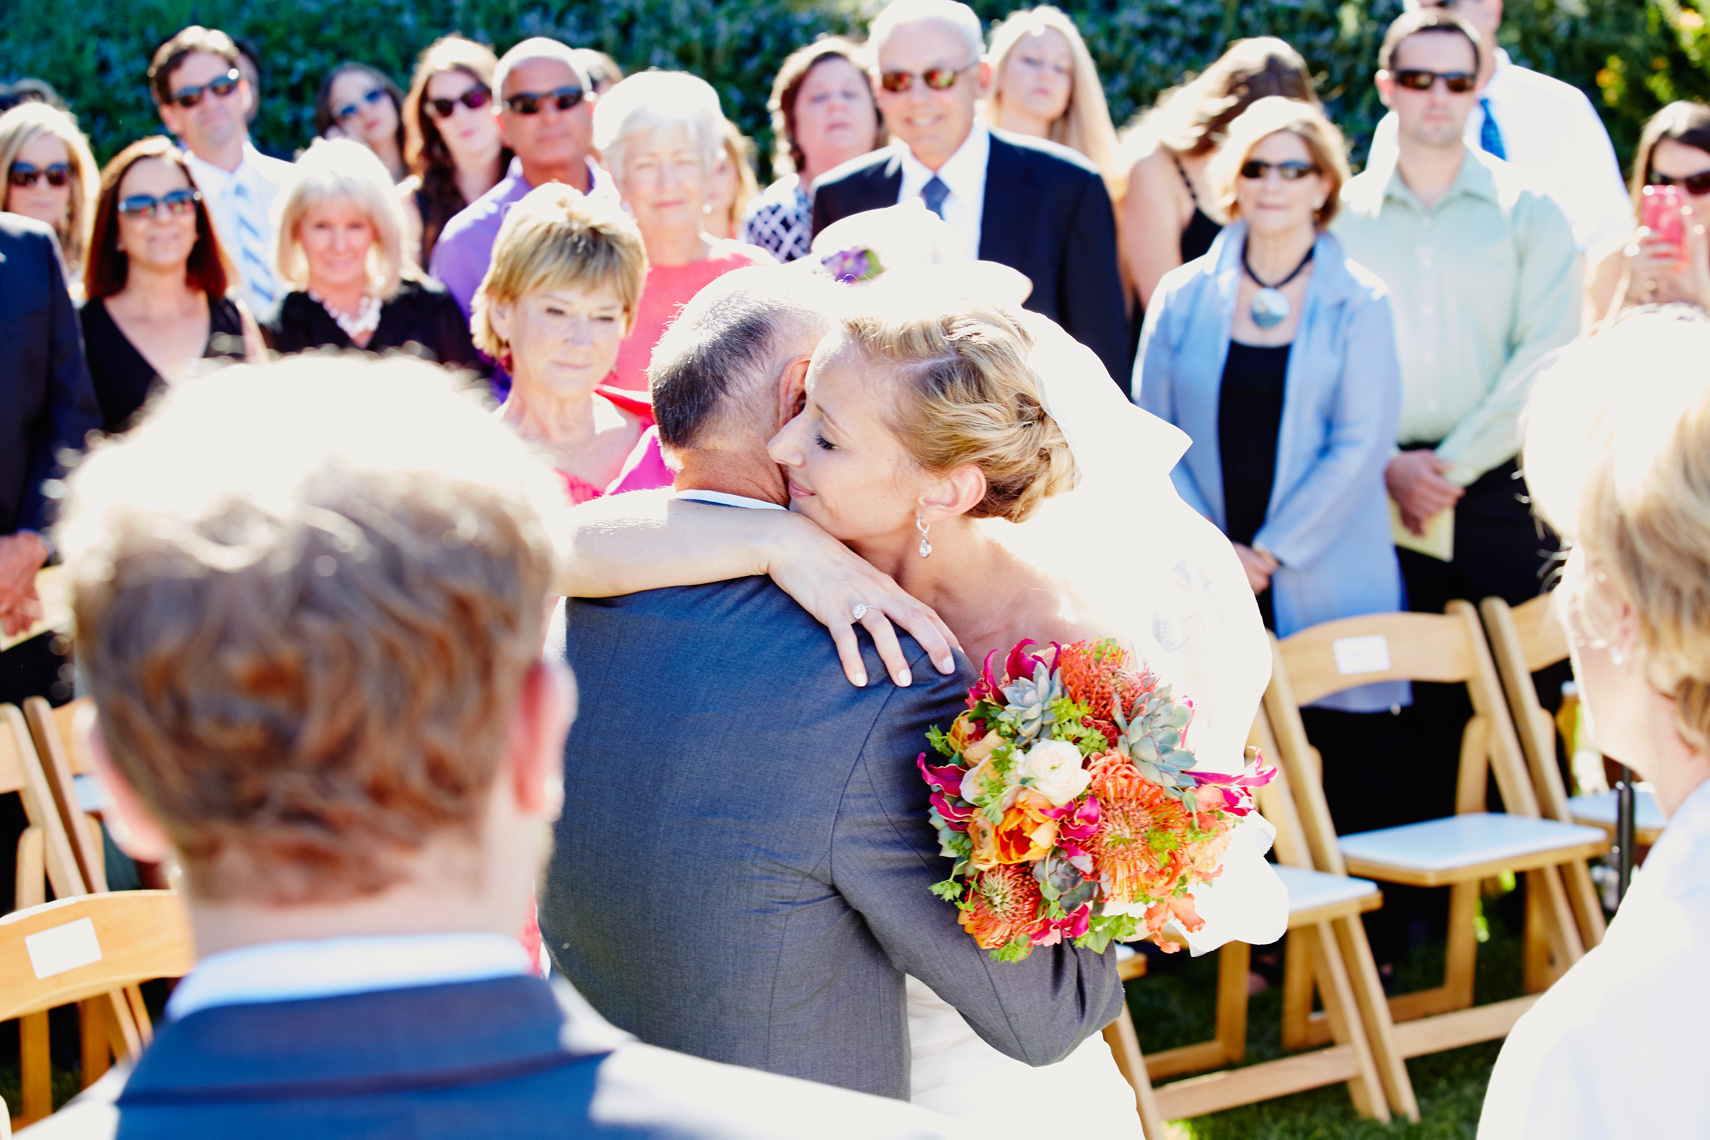 Father gives away bride before ceremony at private estate in Palo Alto, California.